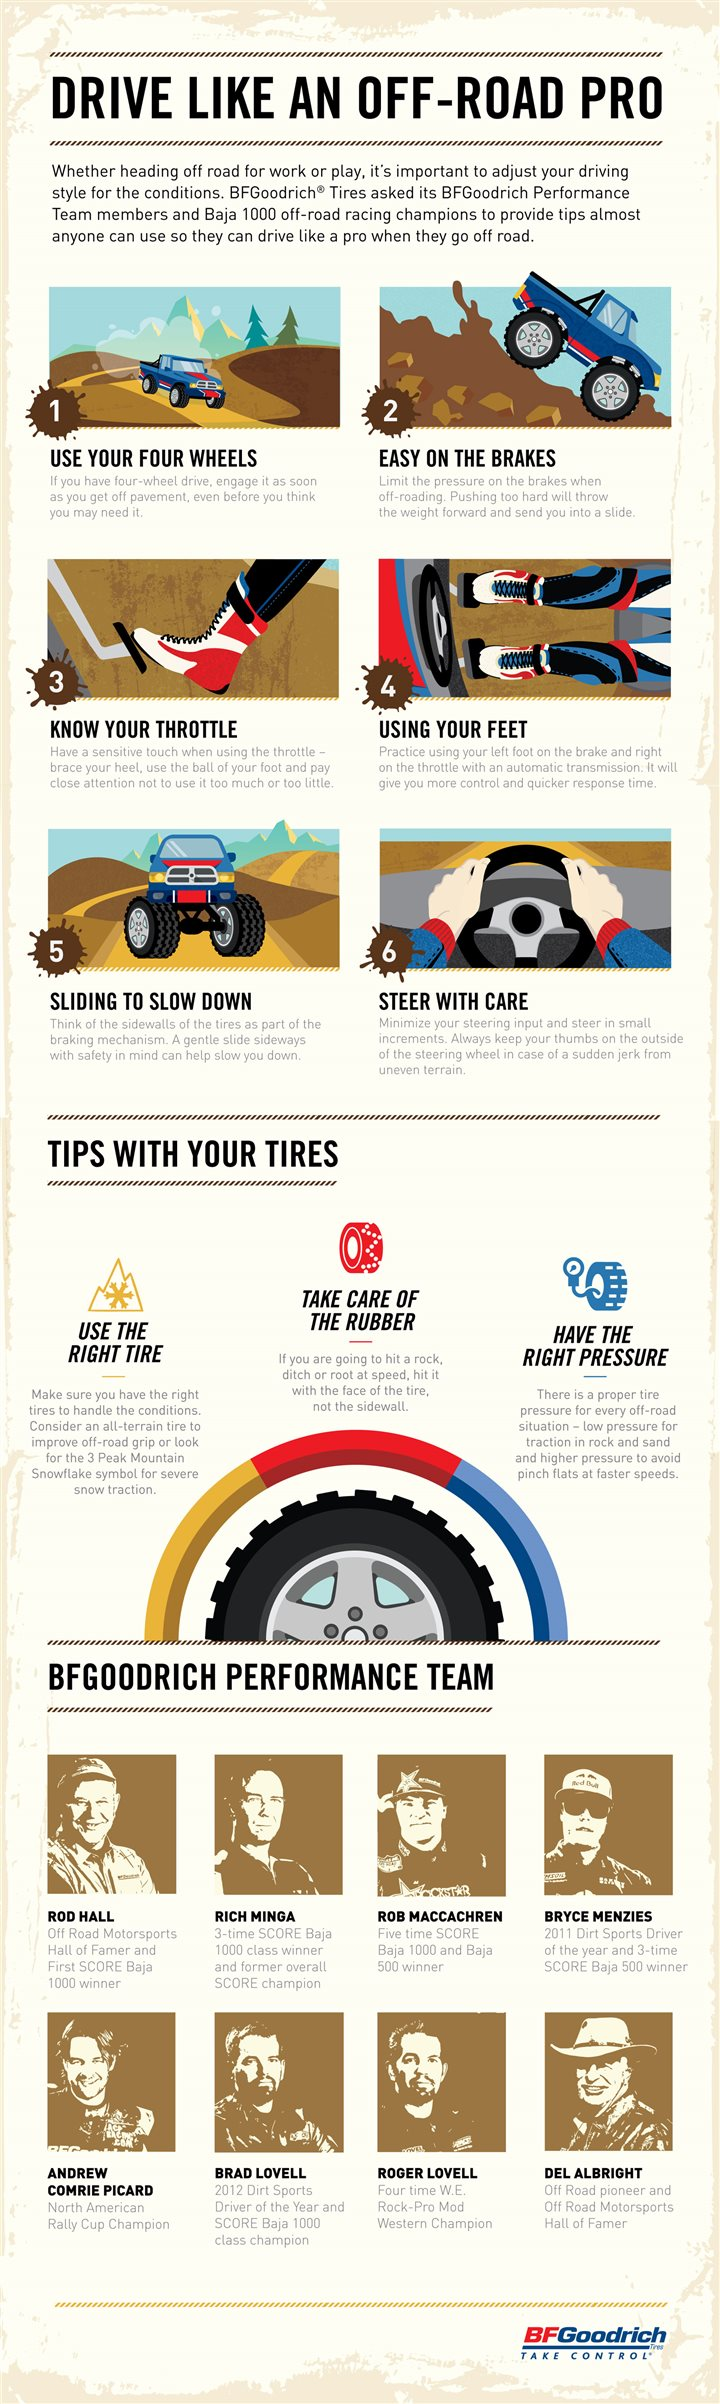 off-road tire infographic